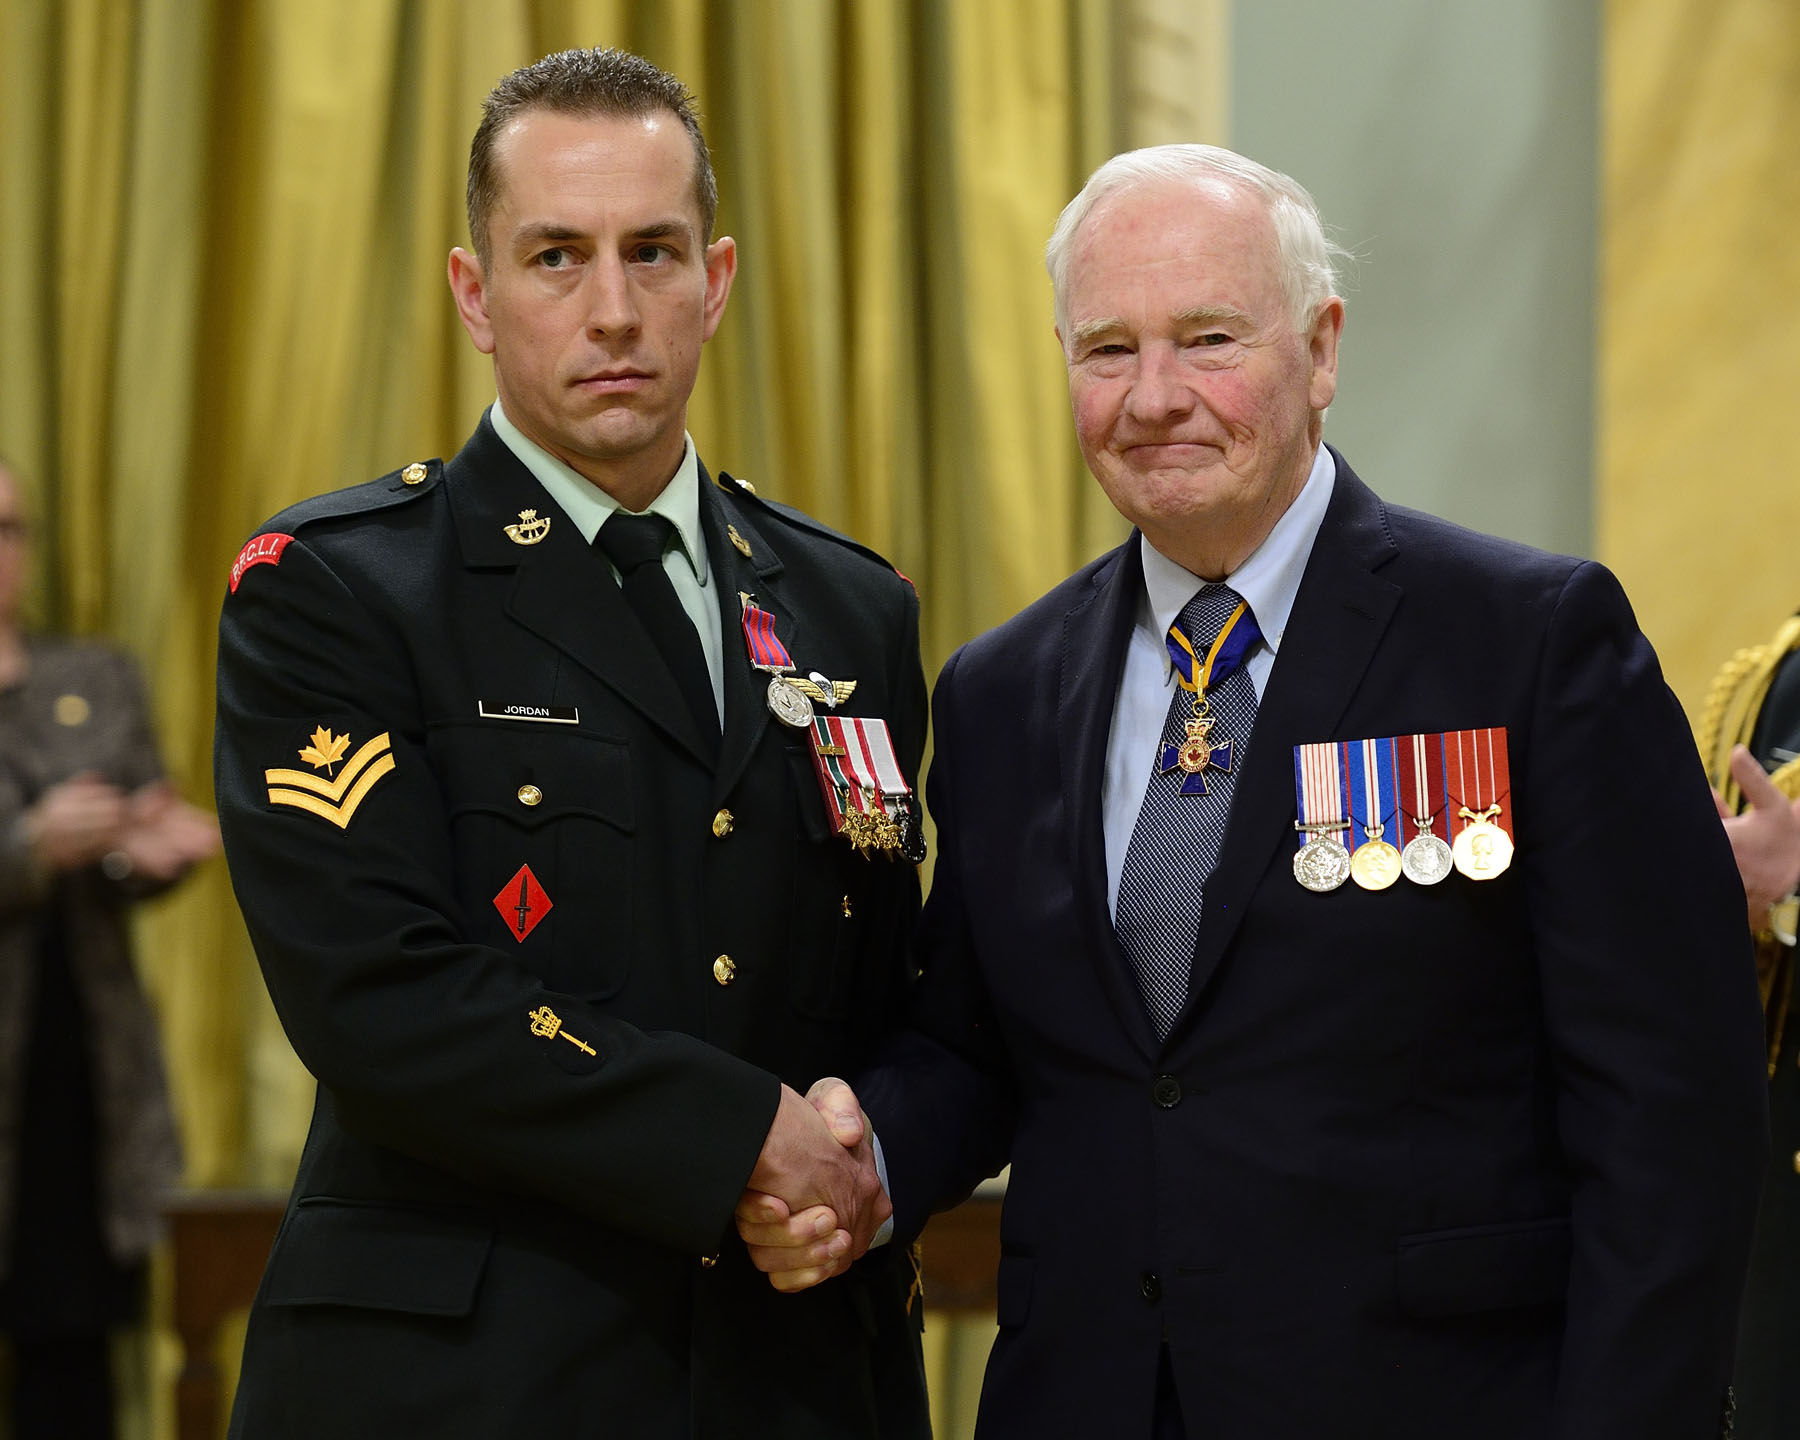 On October 2, 2014, Master Corporal Tyler Jordan, M.B., rescued a fellow parachutist who had become entangled in high-voltage power lines during a night jump near Smith Falls, Ontario. Despite the risk posed by the live wires, Master Corporal Jordan convinced firefighters to raise him in their crane and bucket to reach the victim's side. He then cut the victim free from the wires and pulled him into the safety of the insulated bucket.